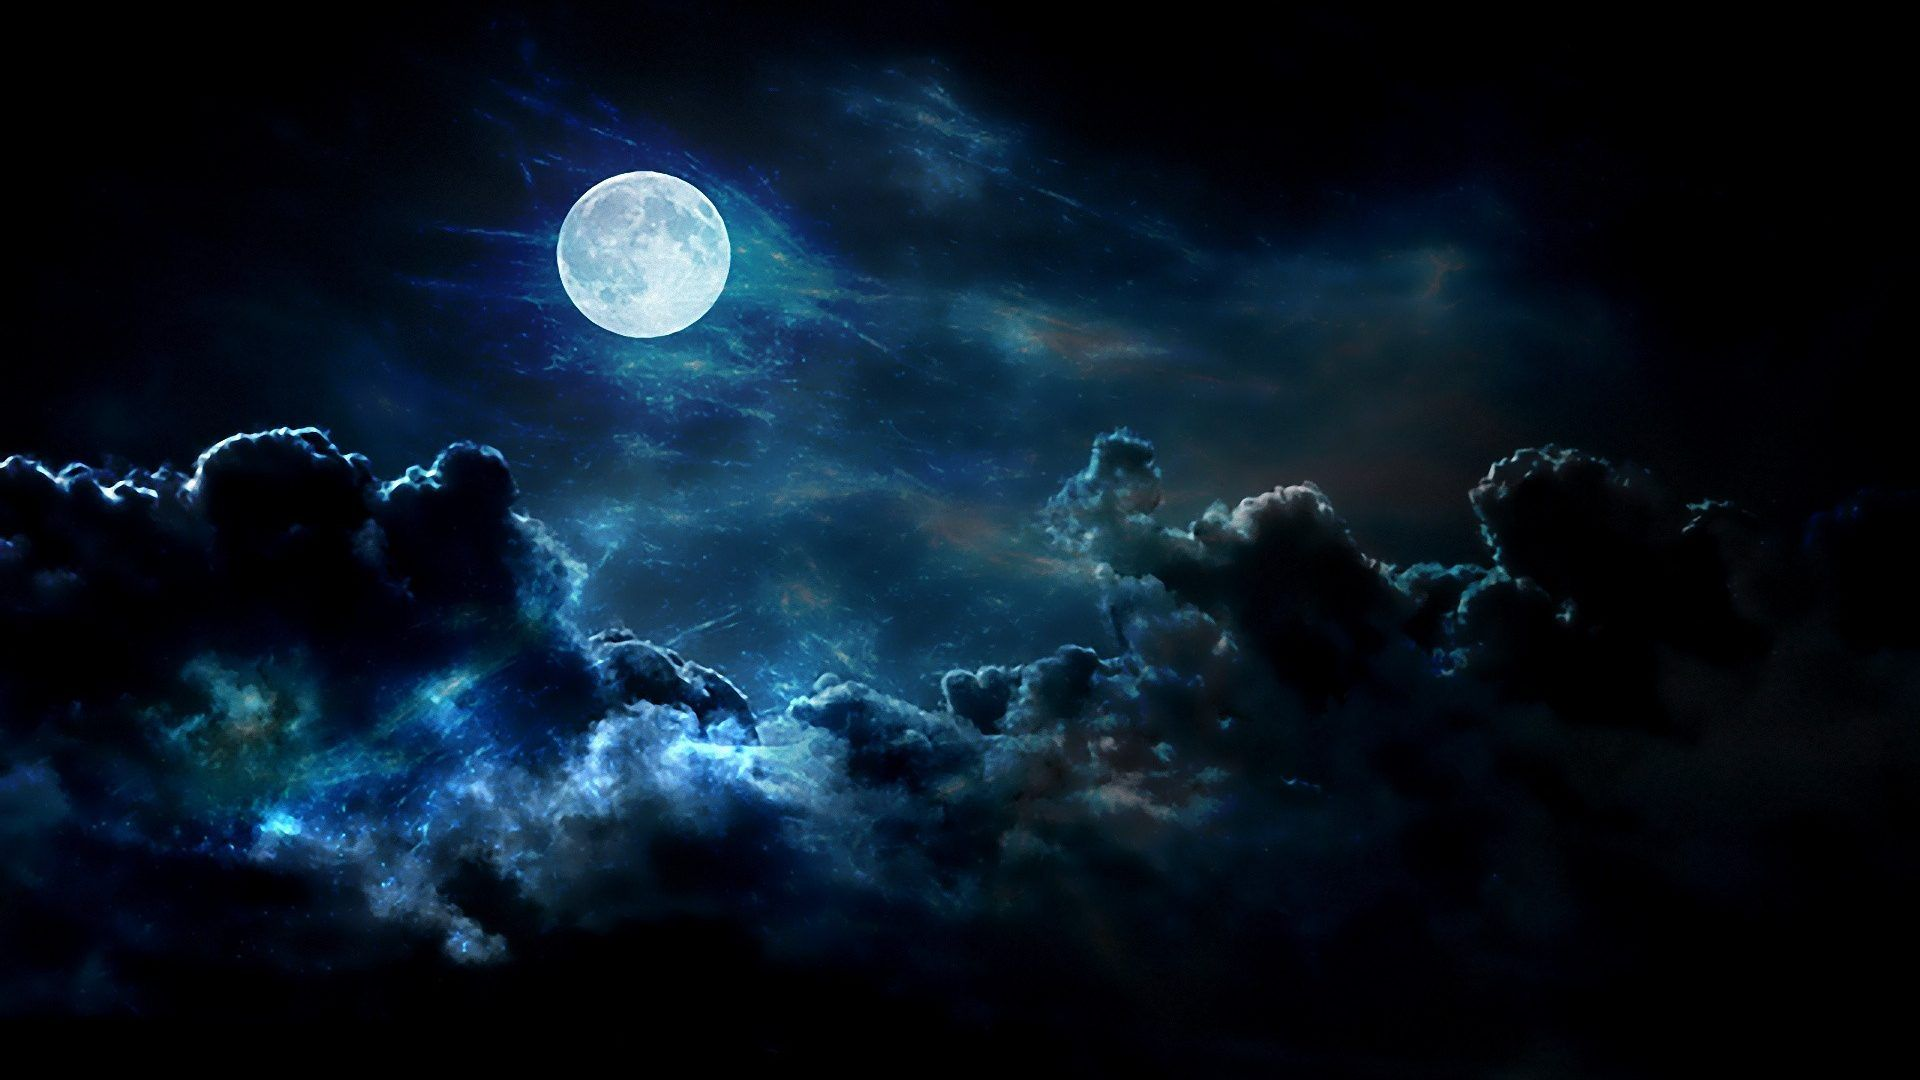 big blue clouds nature night moon skies full wallpaper